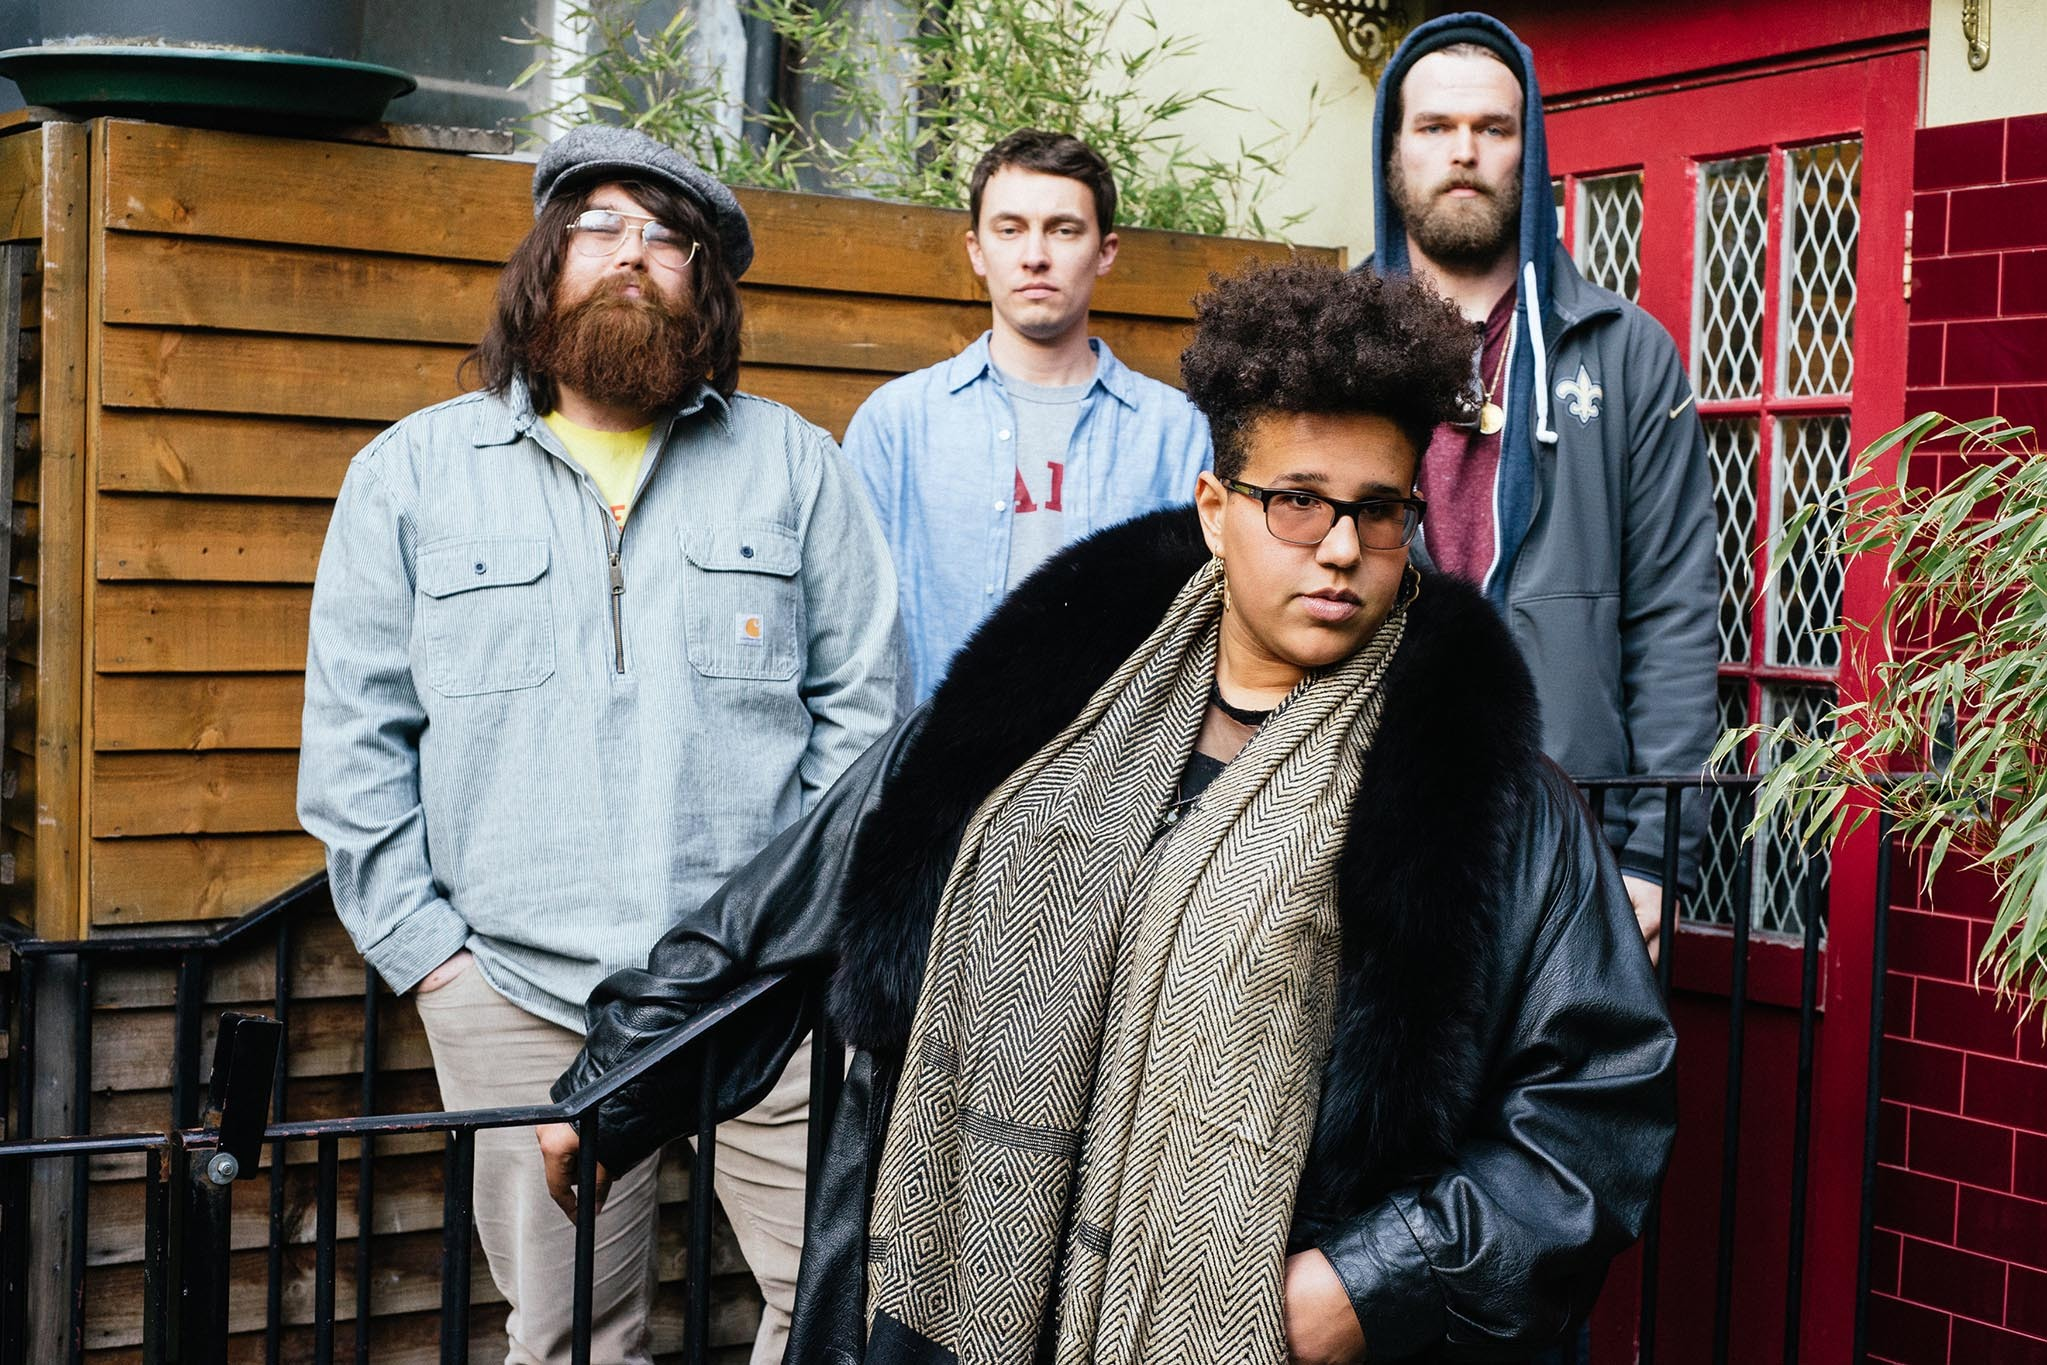 Watch Alabama Shakes play 'Always Alright' at Lollapalooza